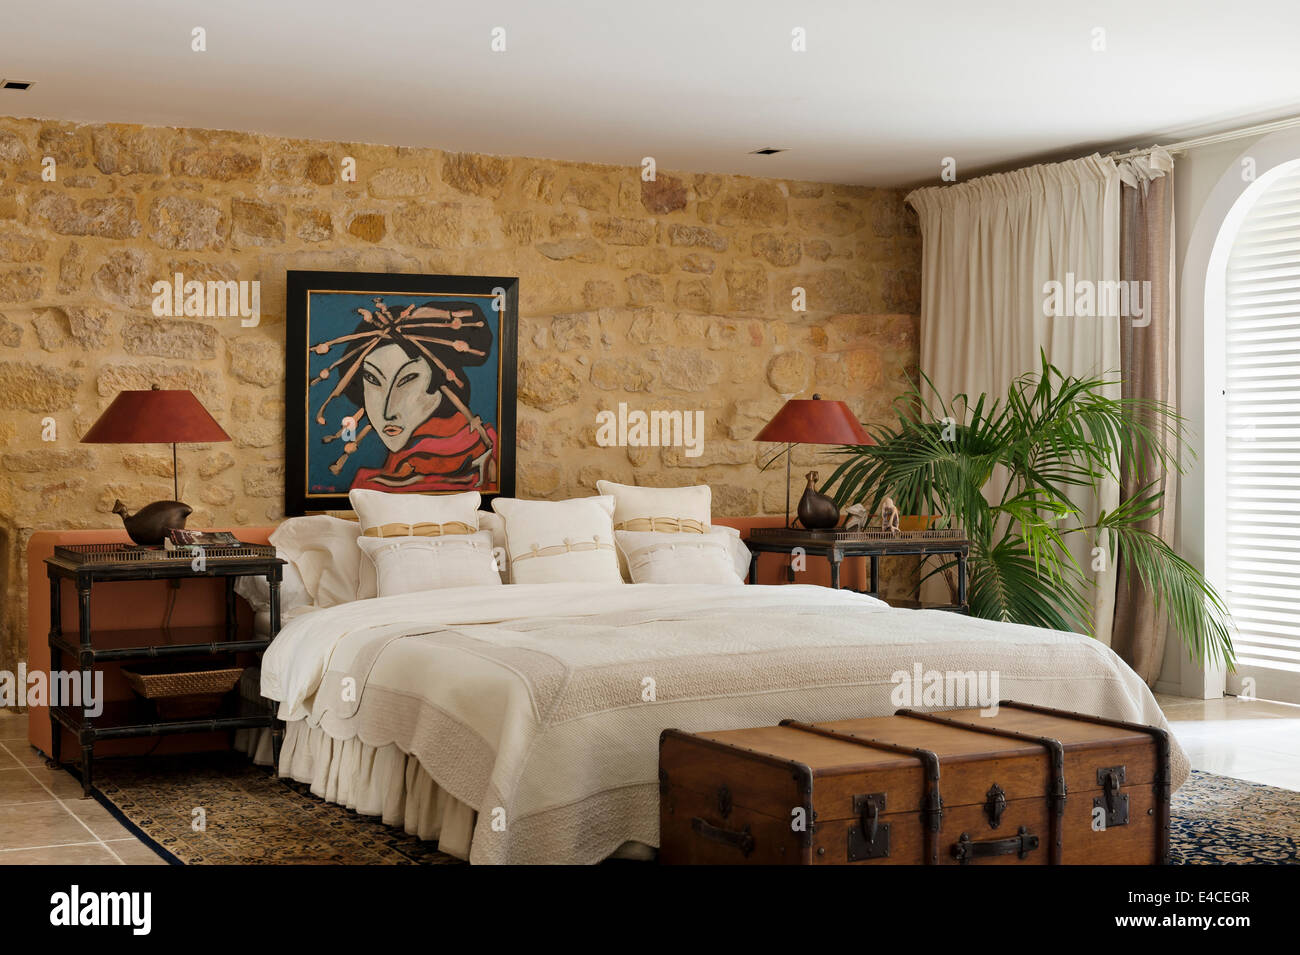 Stone walled bedroom with Geisha painting by Gillian Meijer, lacquer bedside tables and large wooden trunk - Stock Image